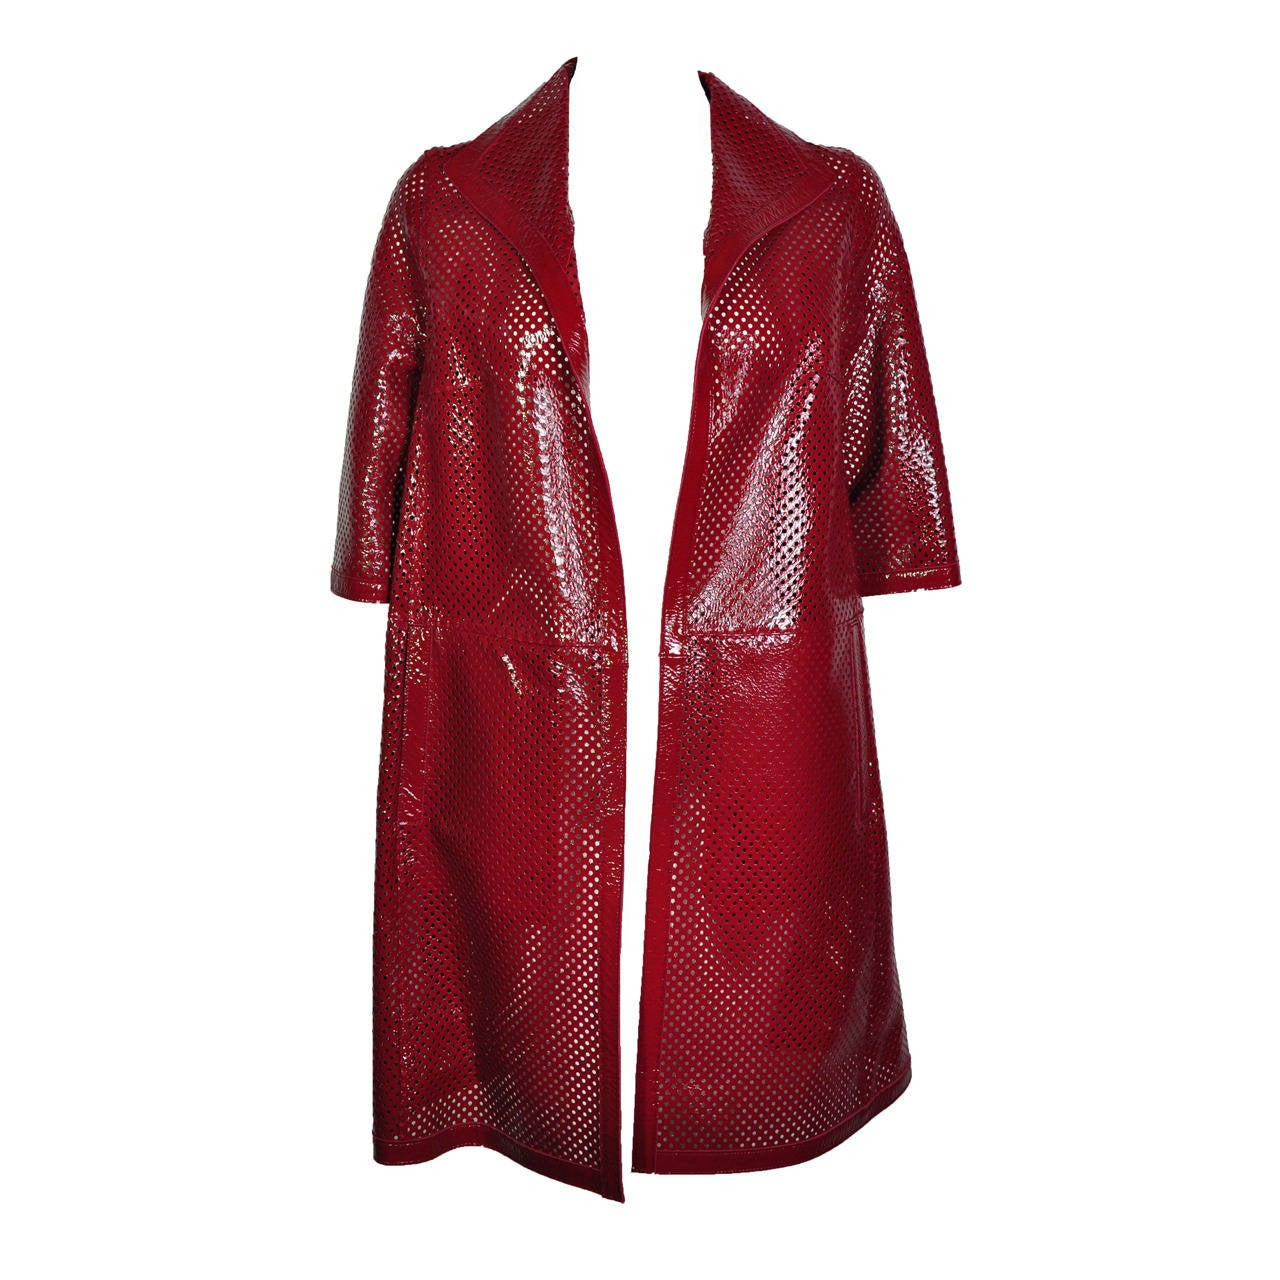 Marni Chili Red Perforated Patent Leather Dust Coat For Sale